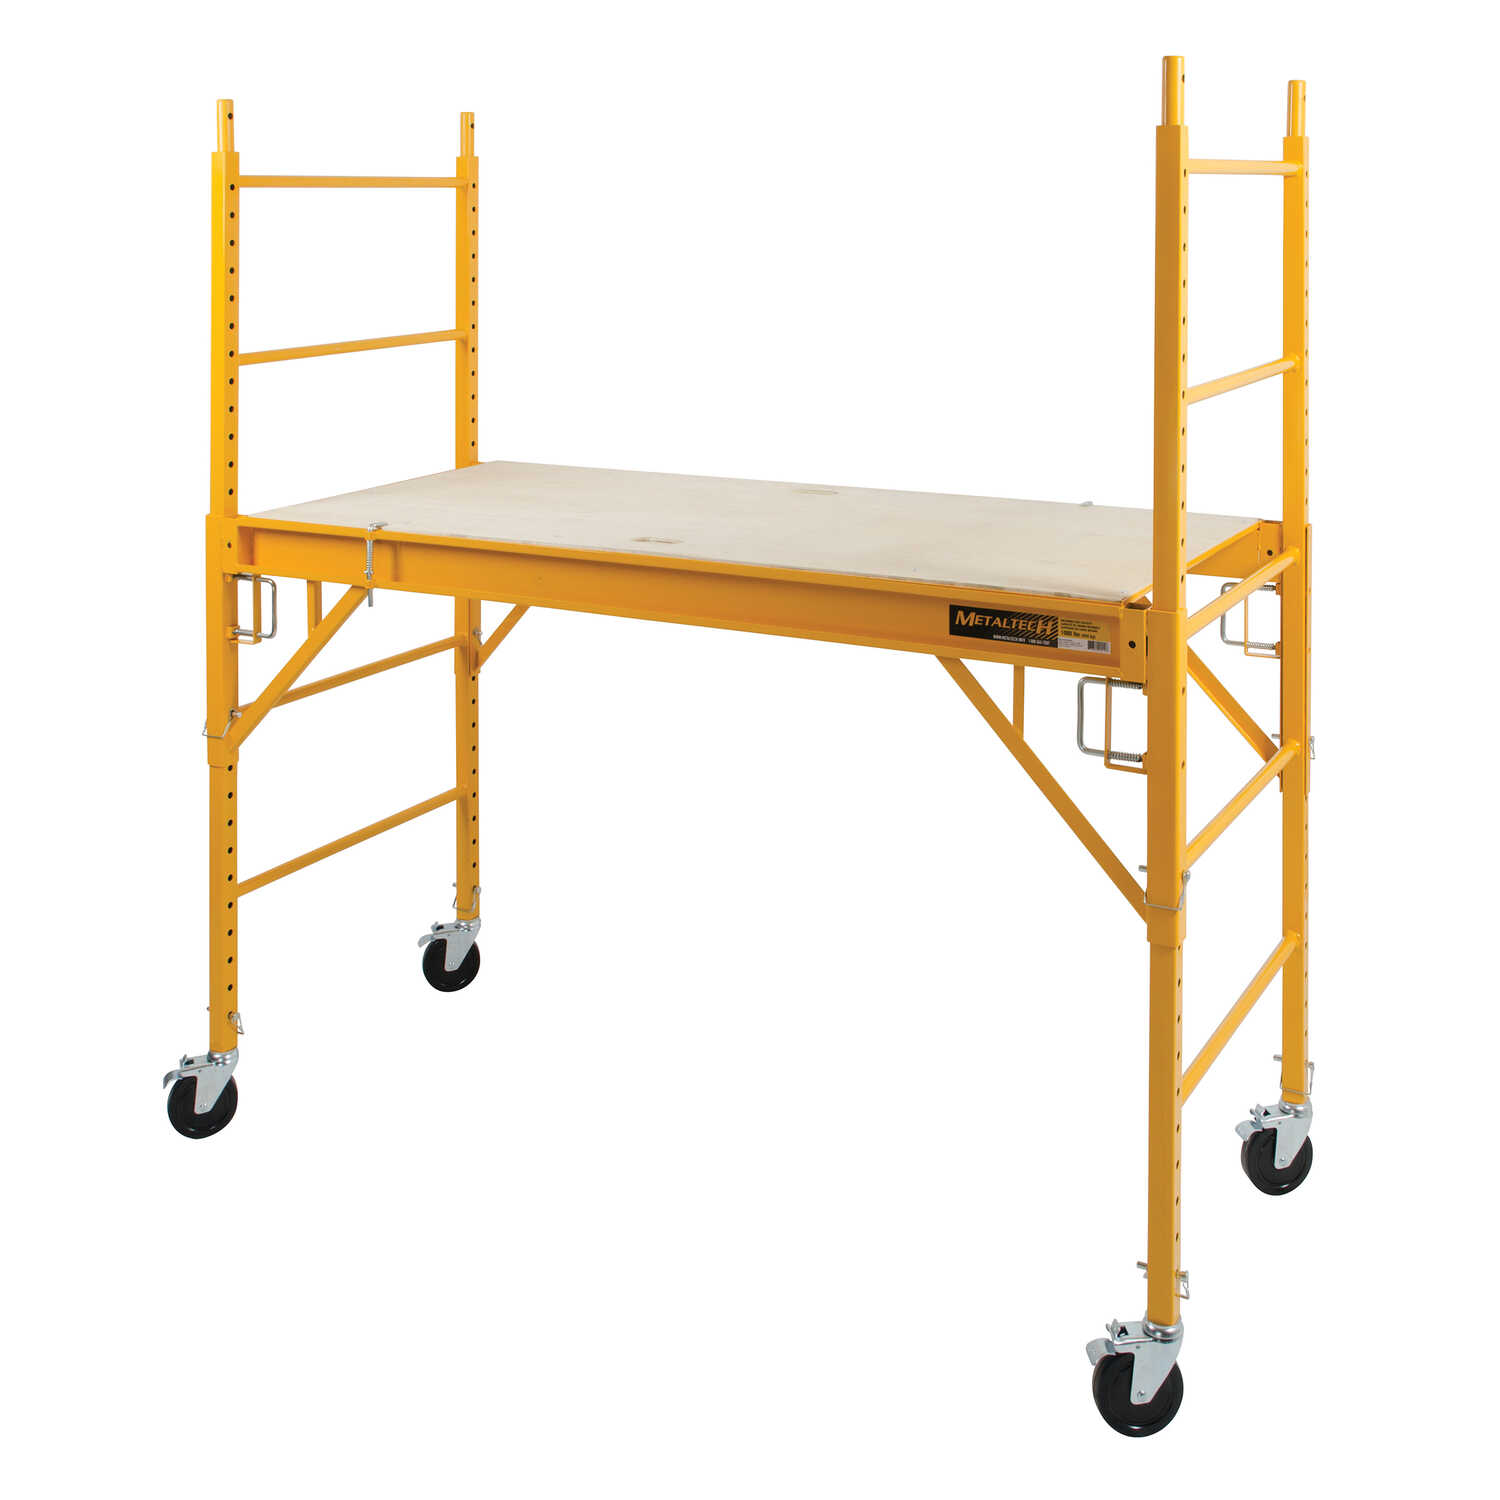 Metaltech  Steel  Yellow  Work Platform  Type IA  1000 lb.